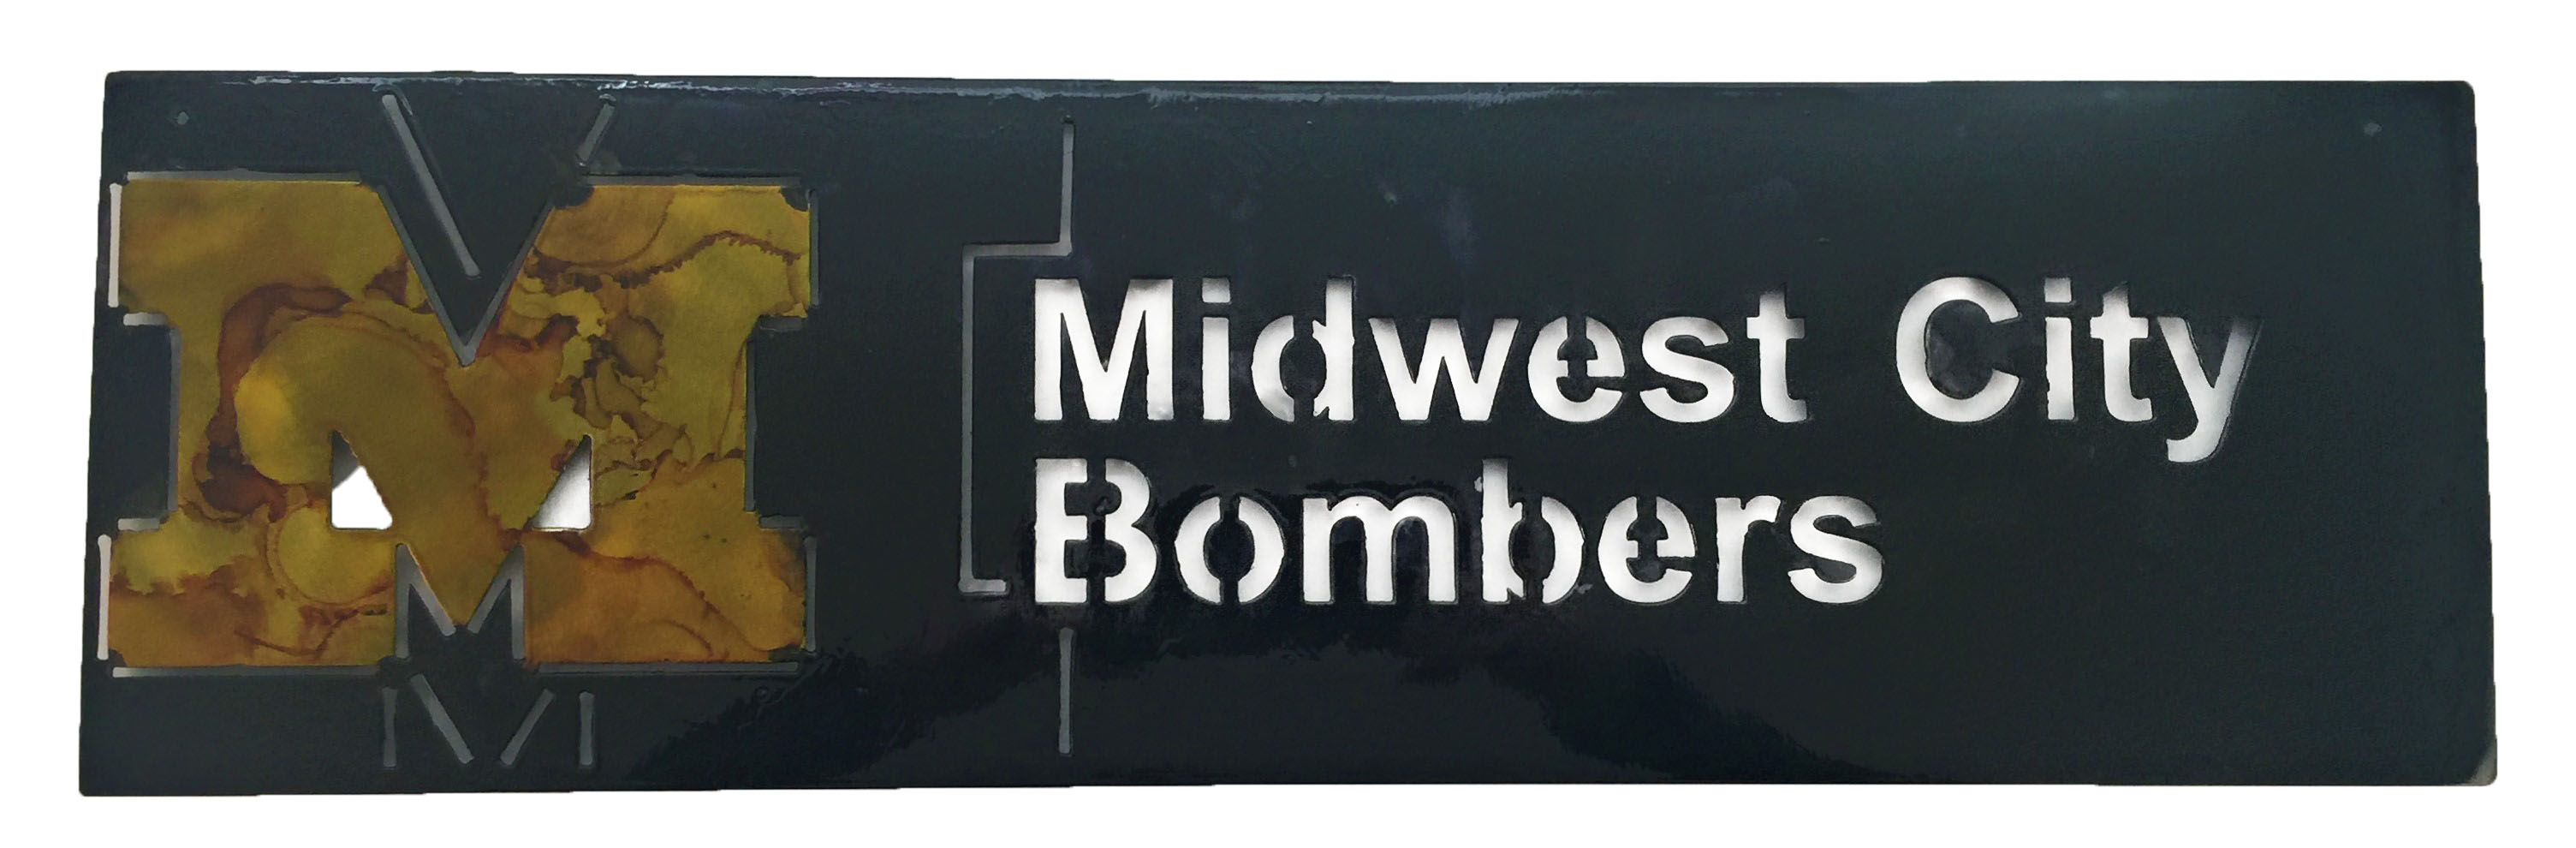 Midwest City Bomber_Custom